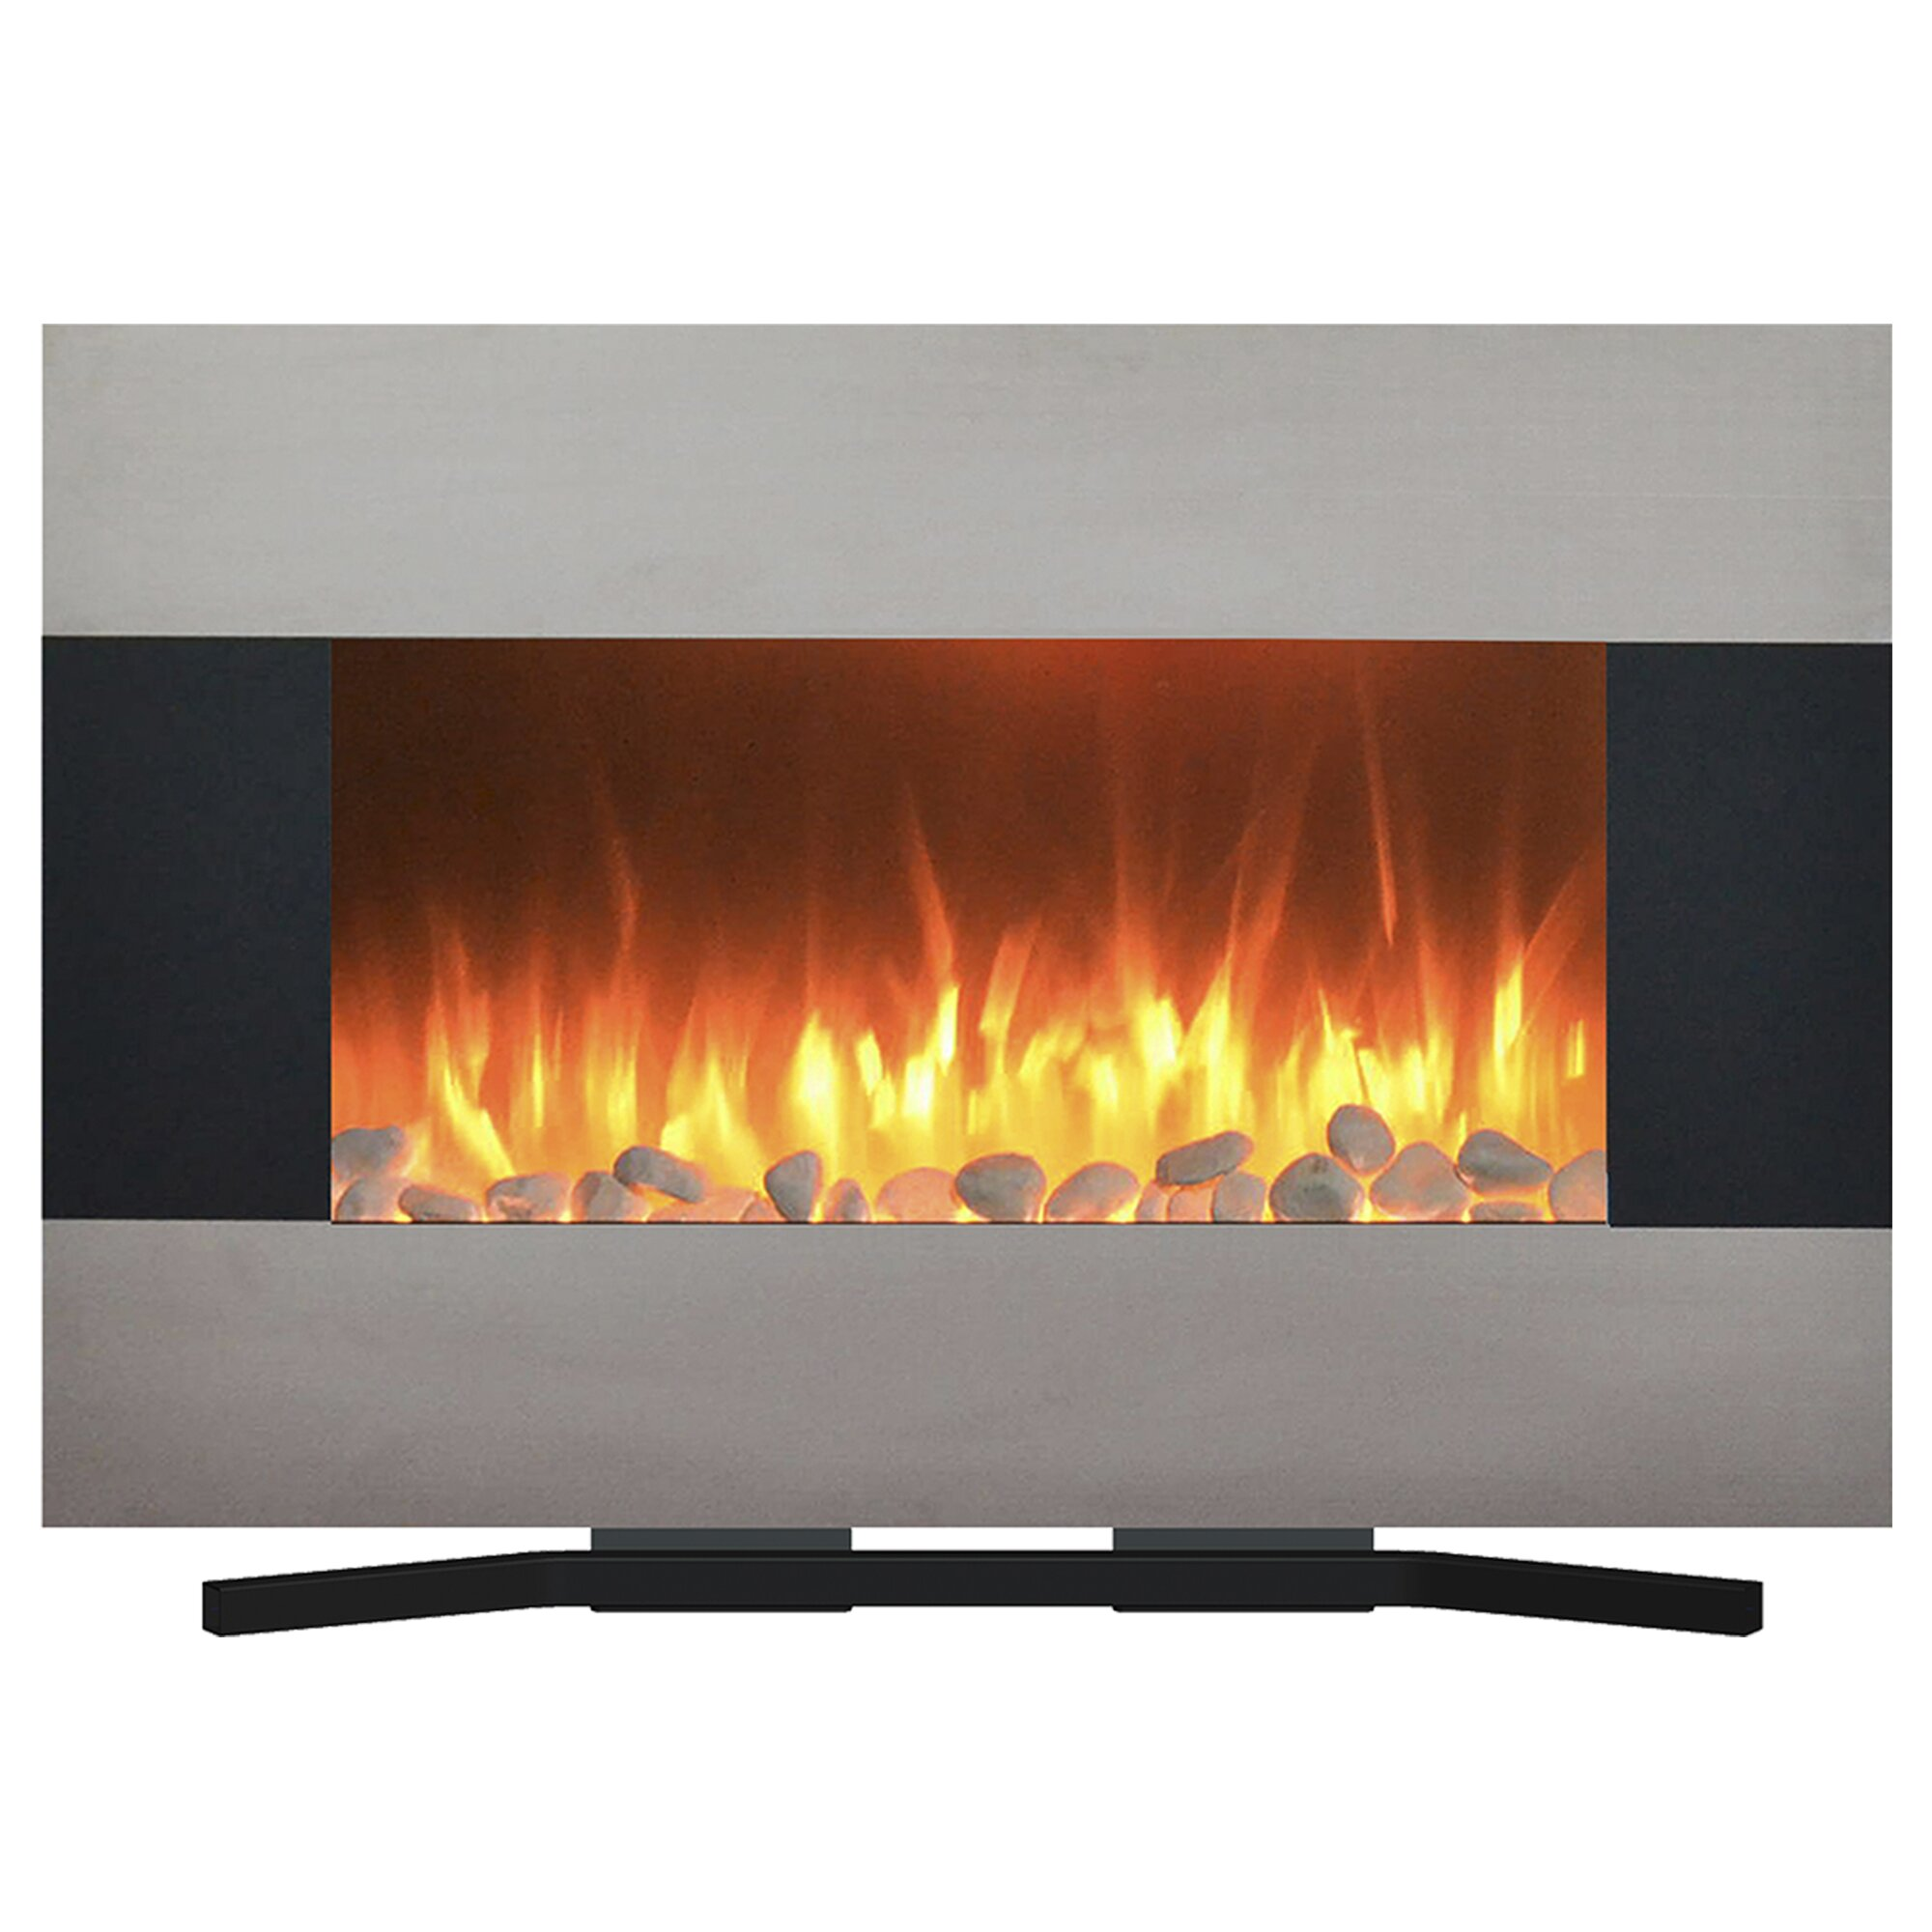 Bedroom electric fireplace - Wall Mount Electric Fireplace